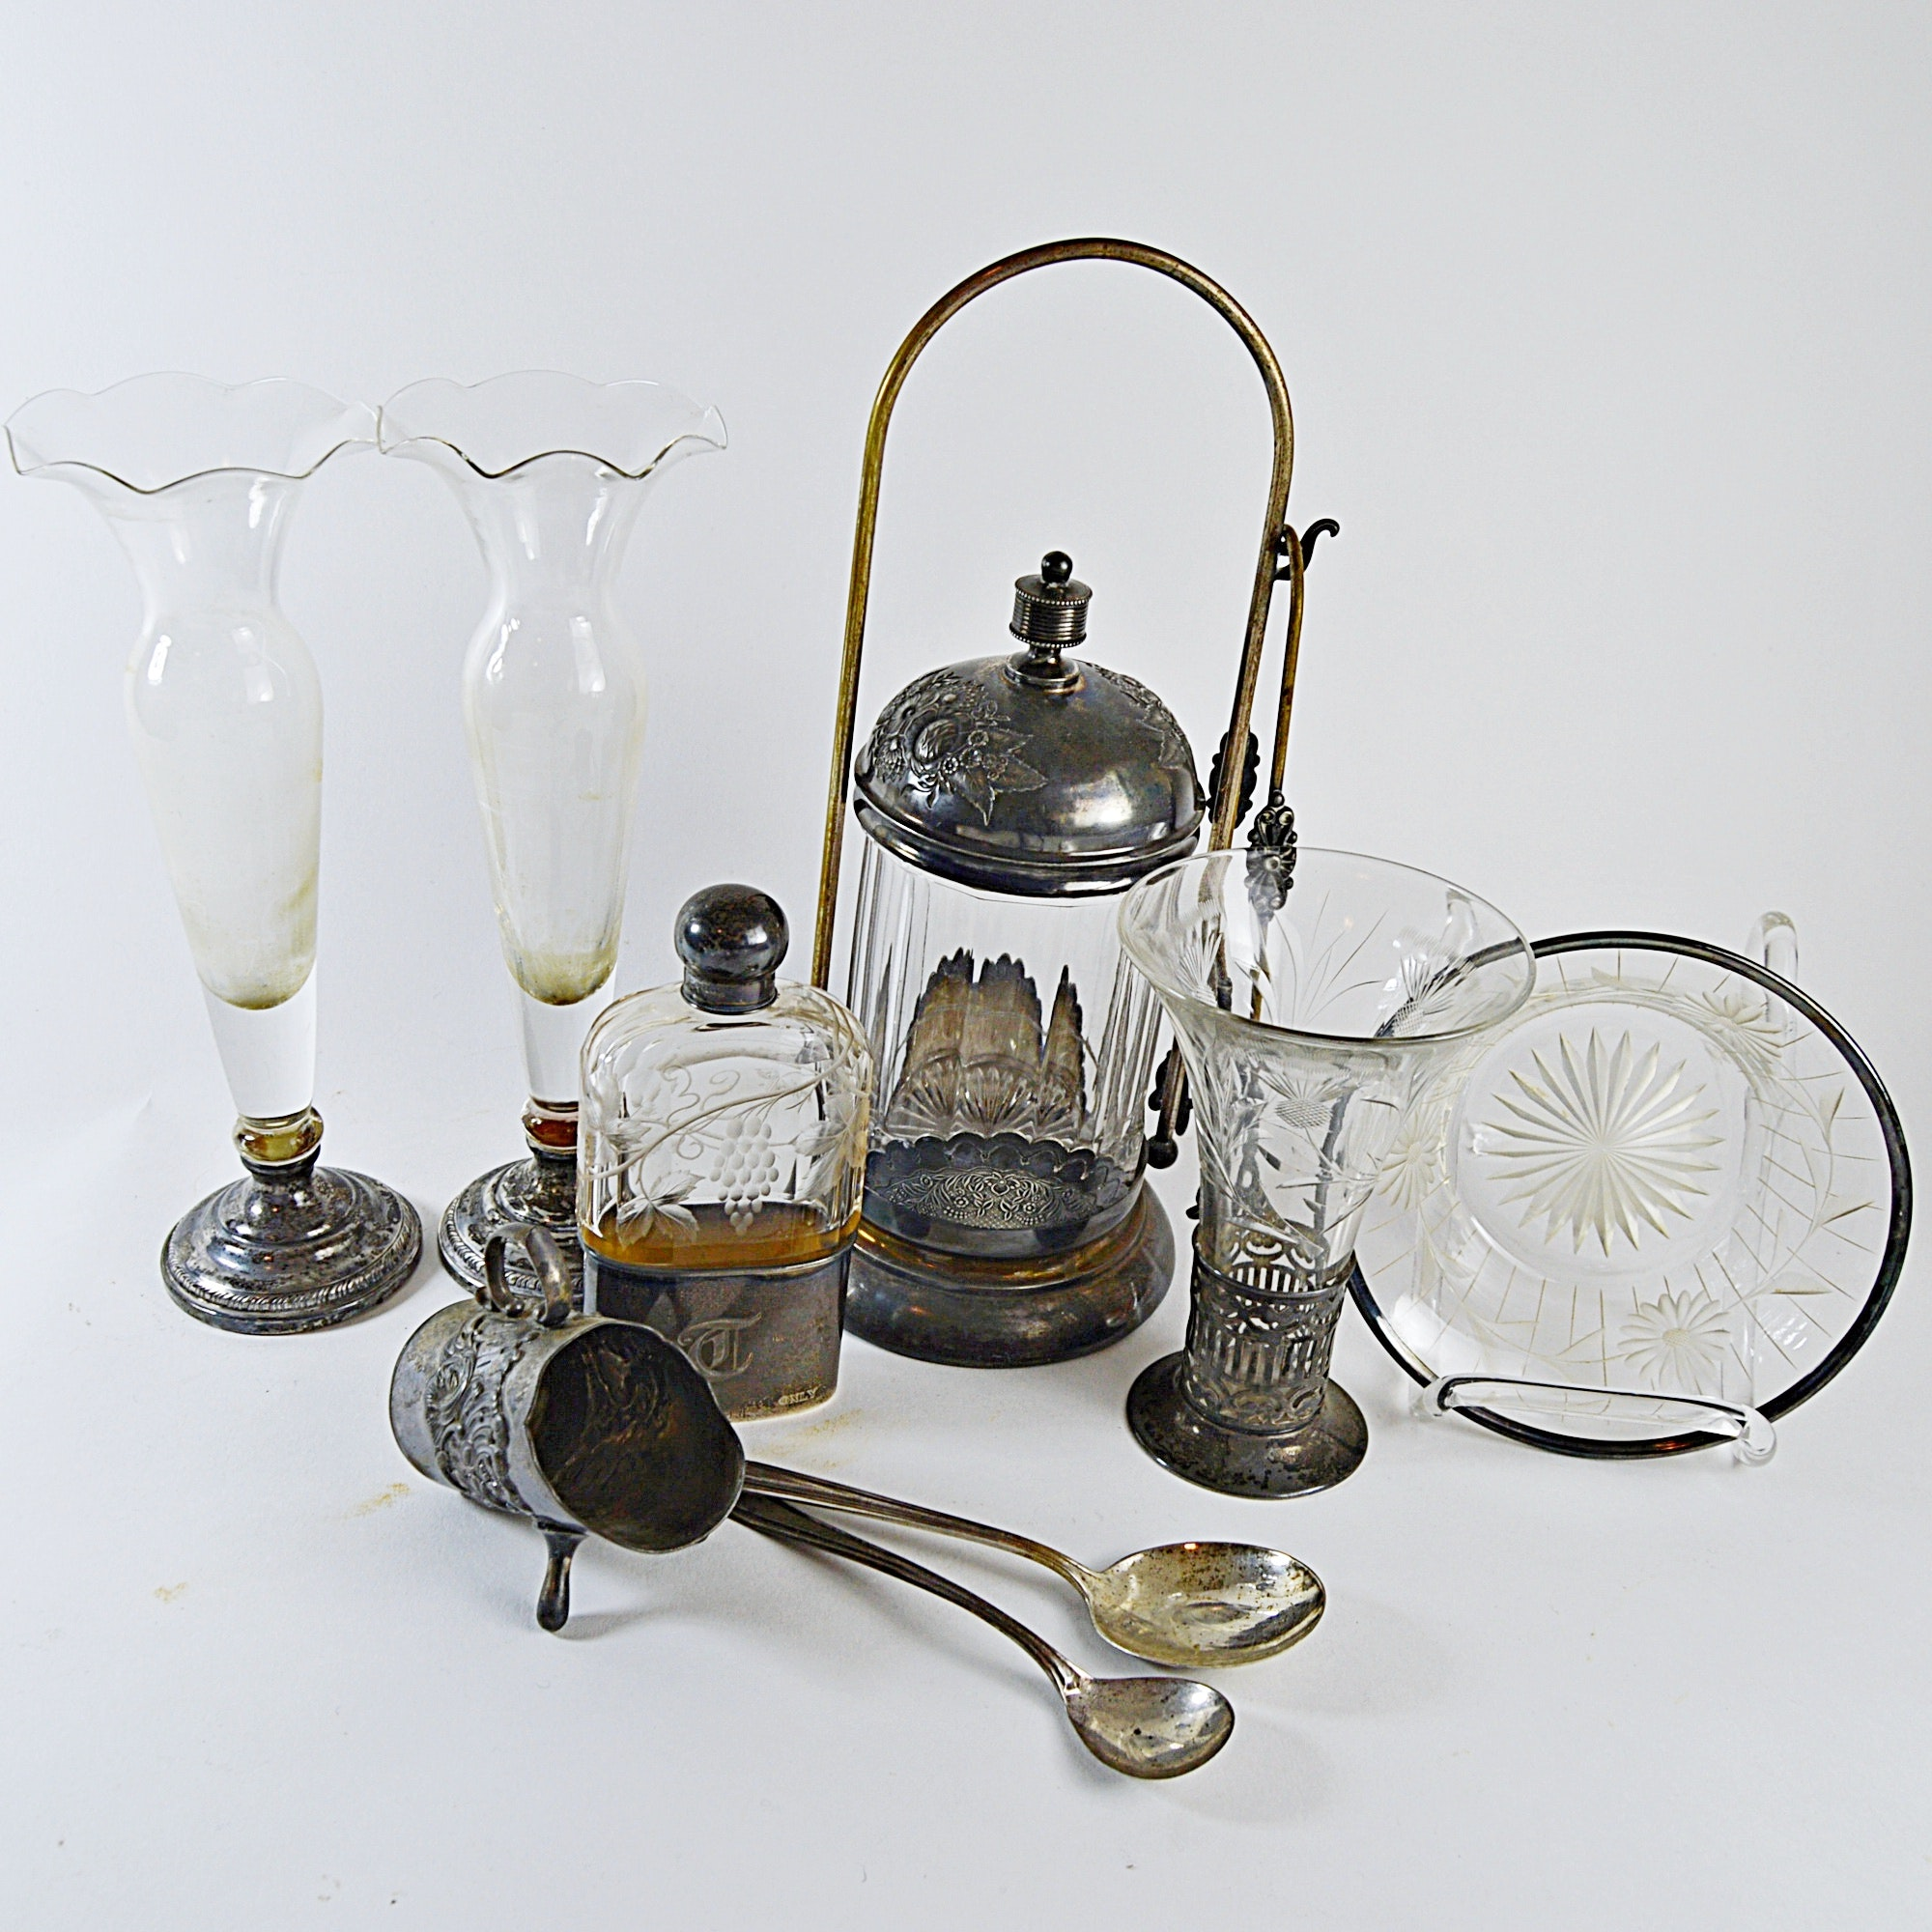 Antique Sterling Silver And Silver Plate Collectibles, Barware And  Kitchenalia ...